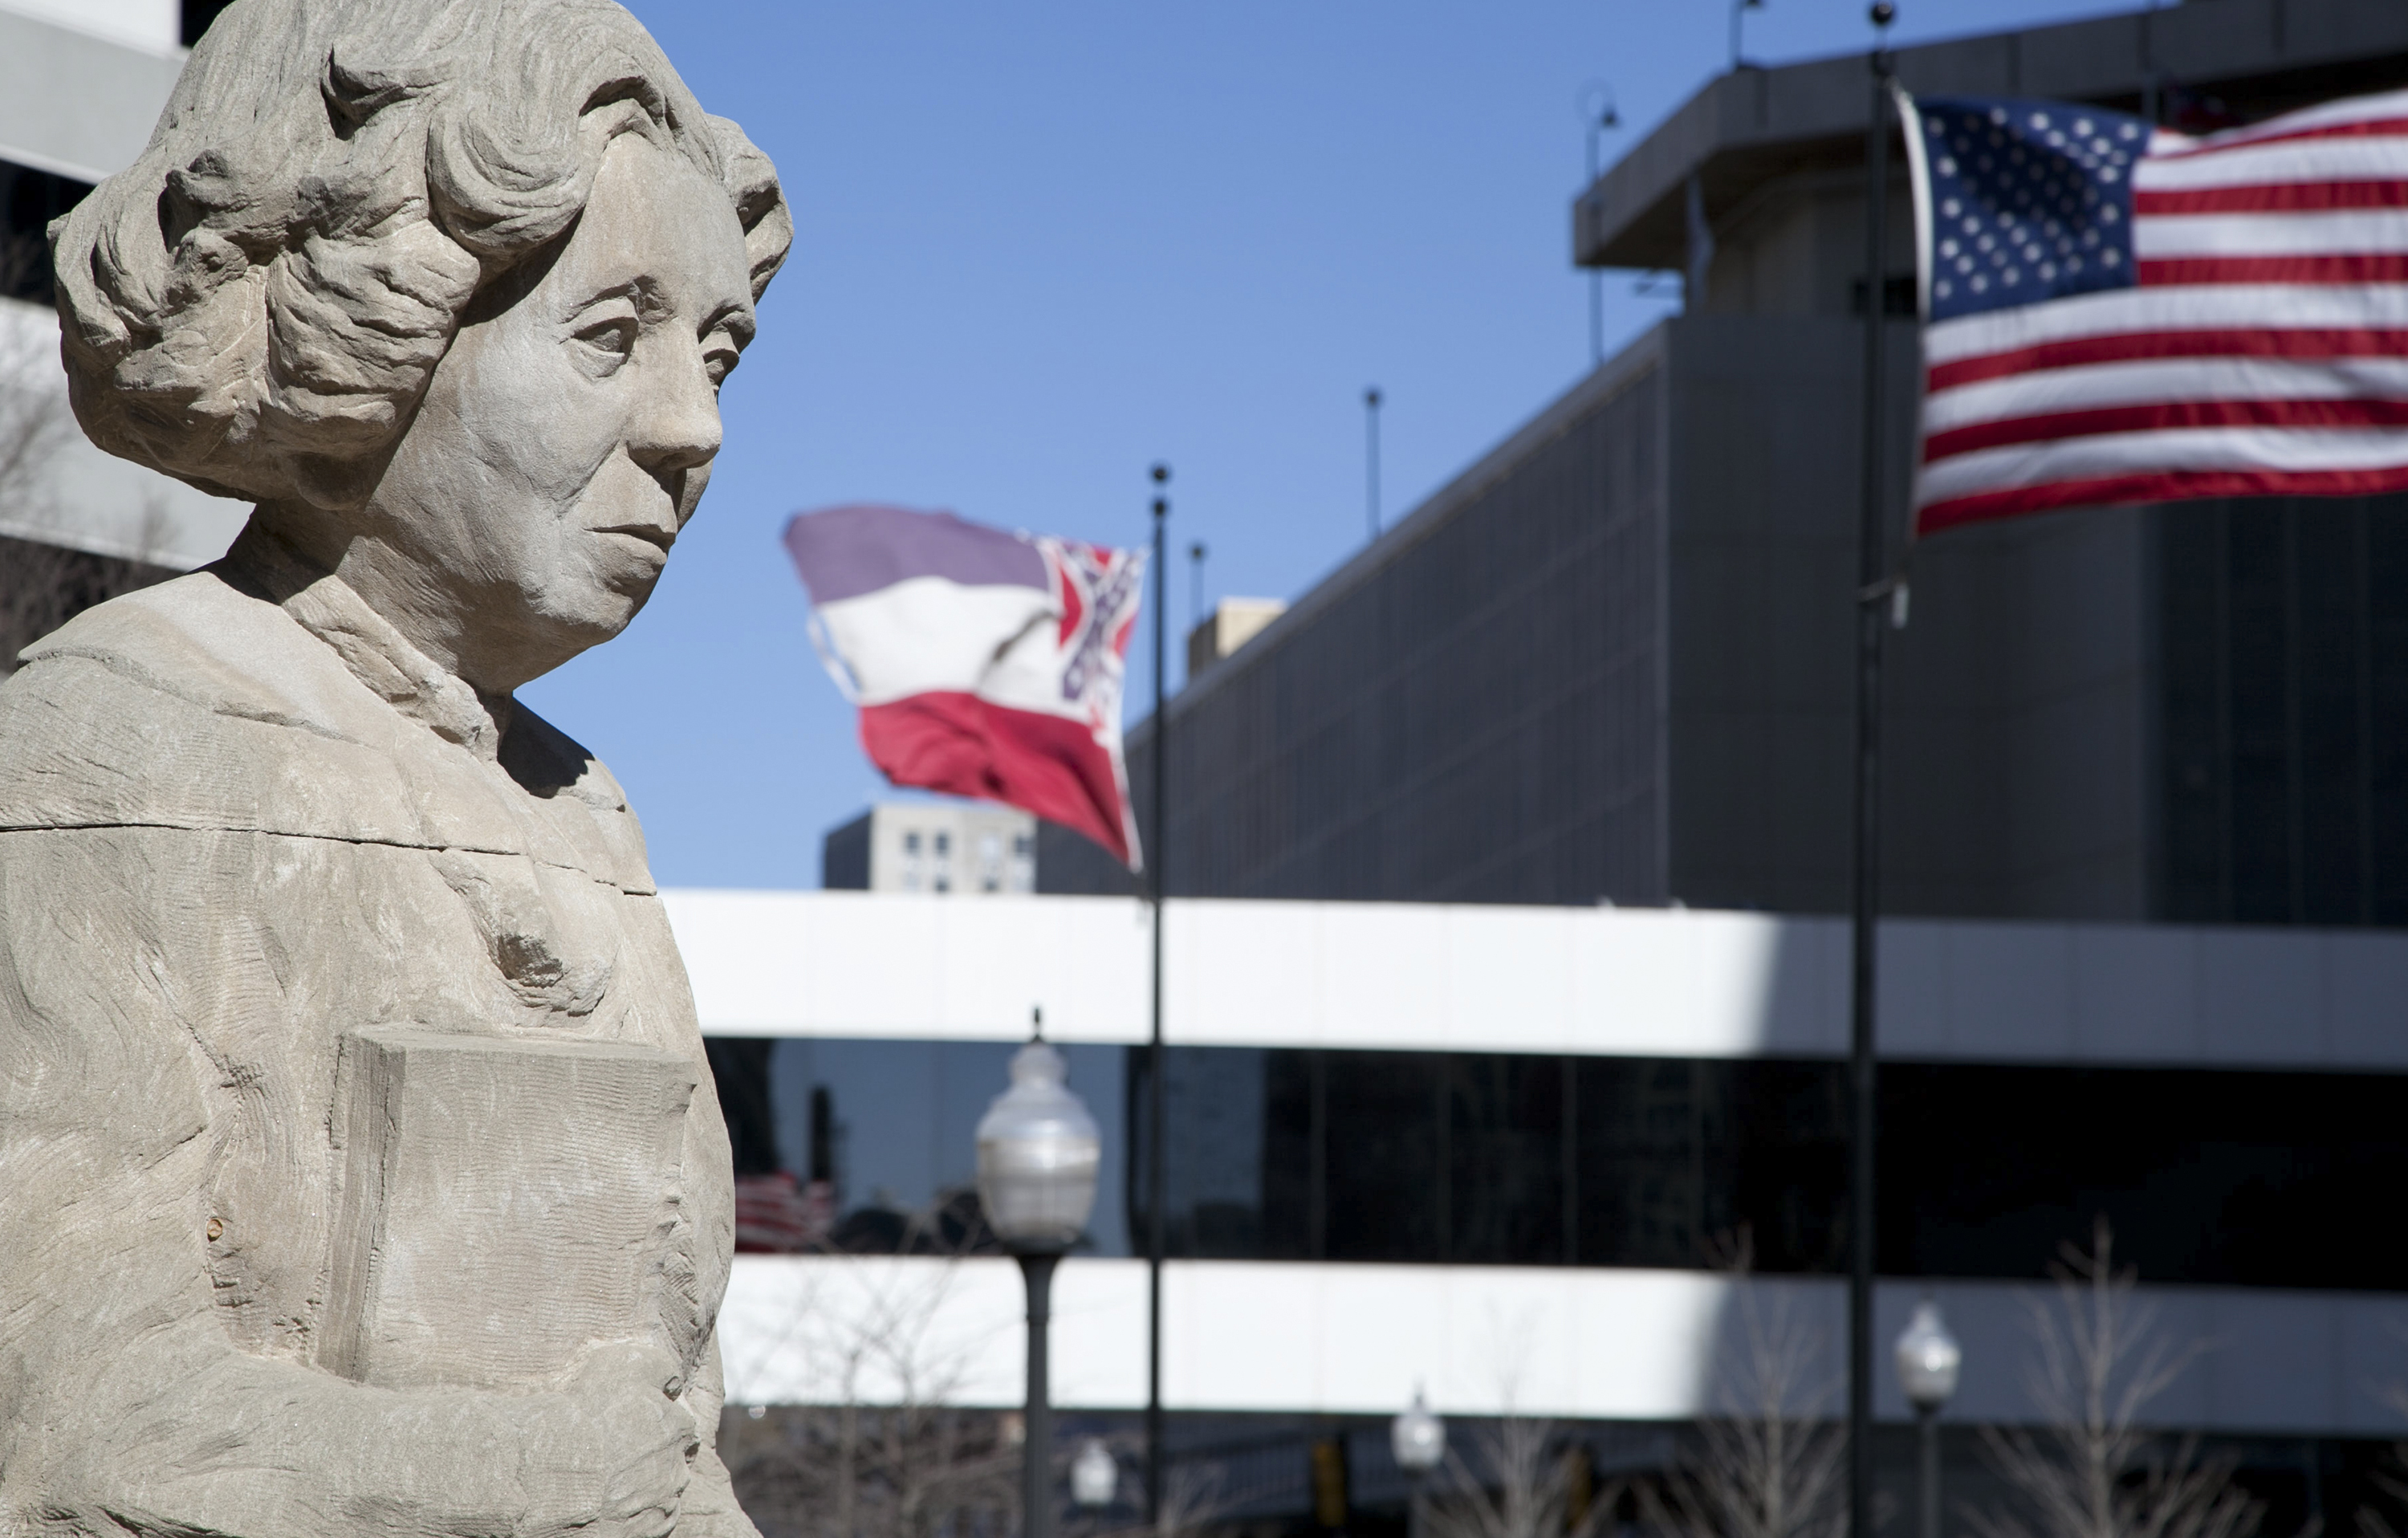 Eudora Welty statue in downtown Jackson.